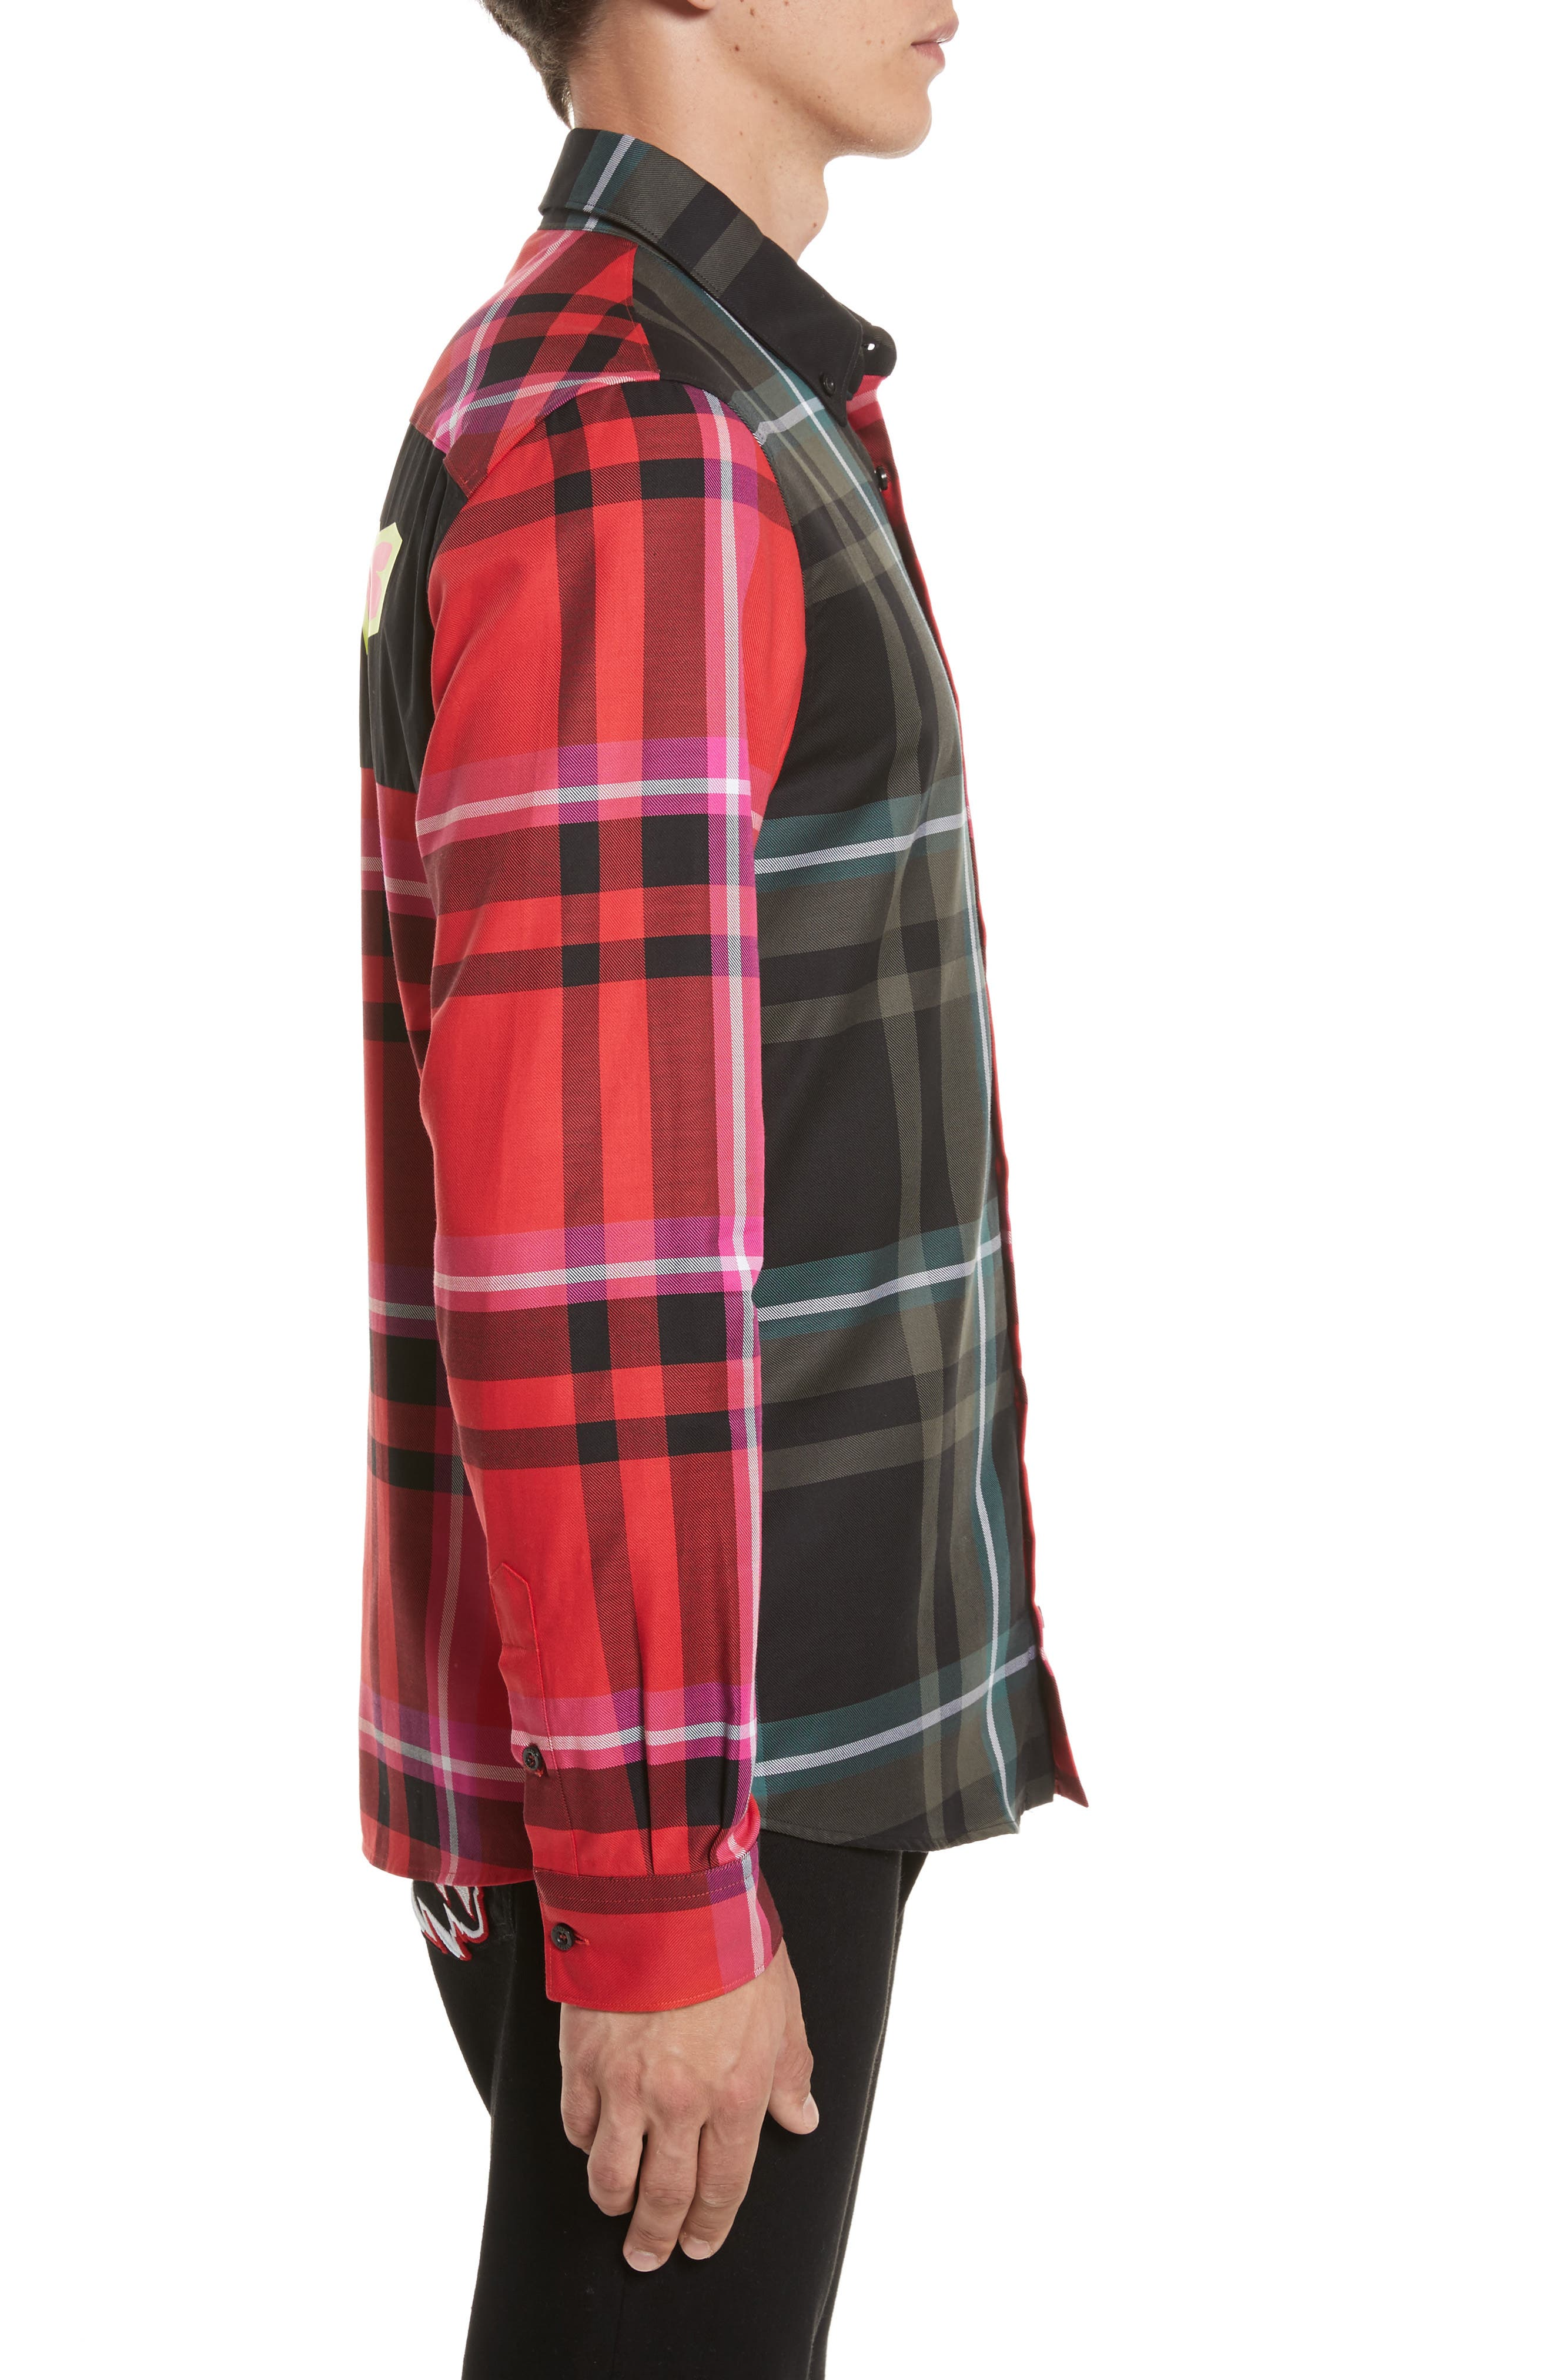 VERSUS by Versace Plaid Woven Shirt,                             Alternate thumbnail 3, color,                             Red Multi